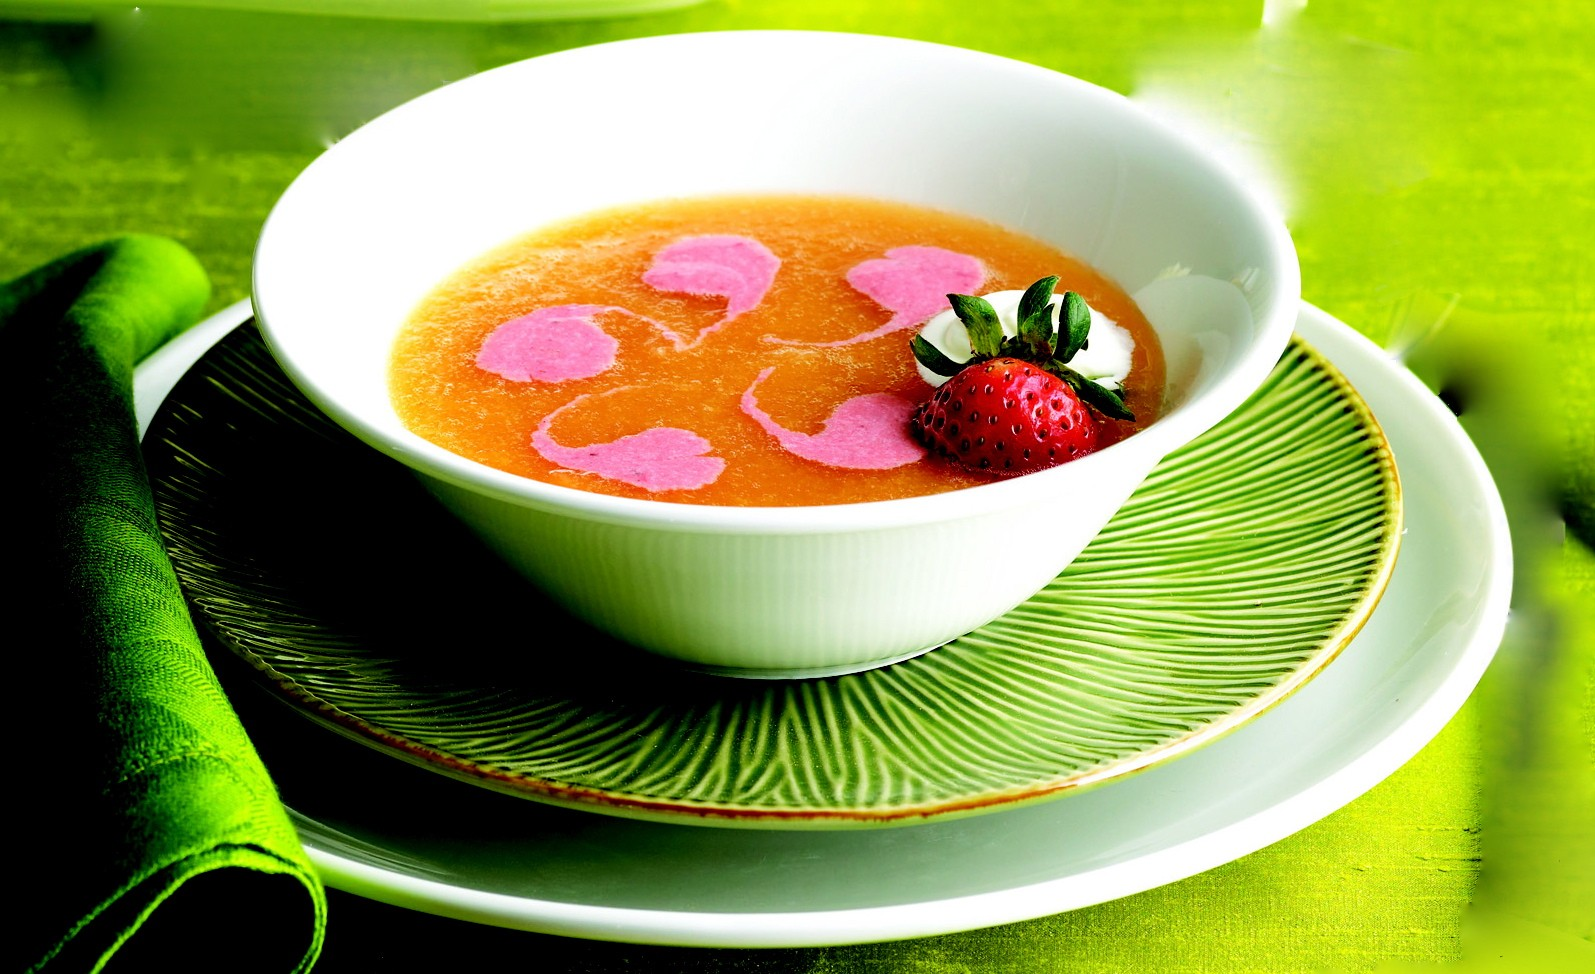 Chilled Cantaloupe Soup Recipe Glorious Soup Recipes Pour soup into melon bowls and swirl in a teaspoon of sour cream as a garnish. glorious soup recipes